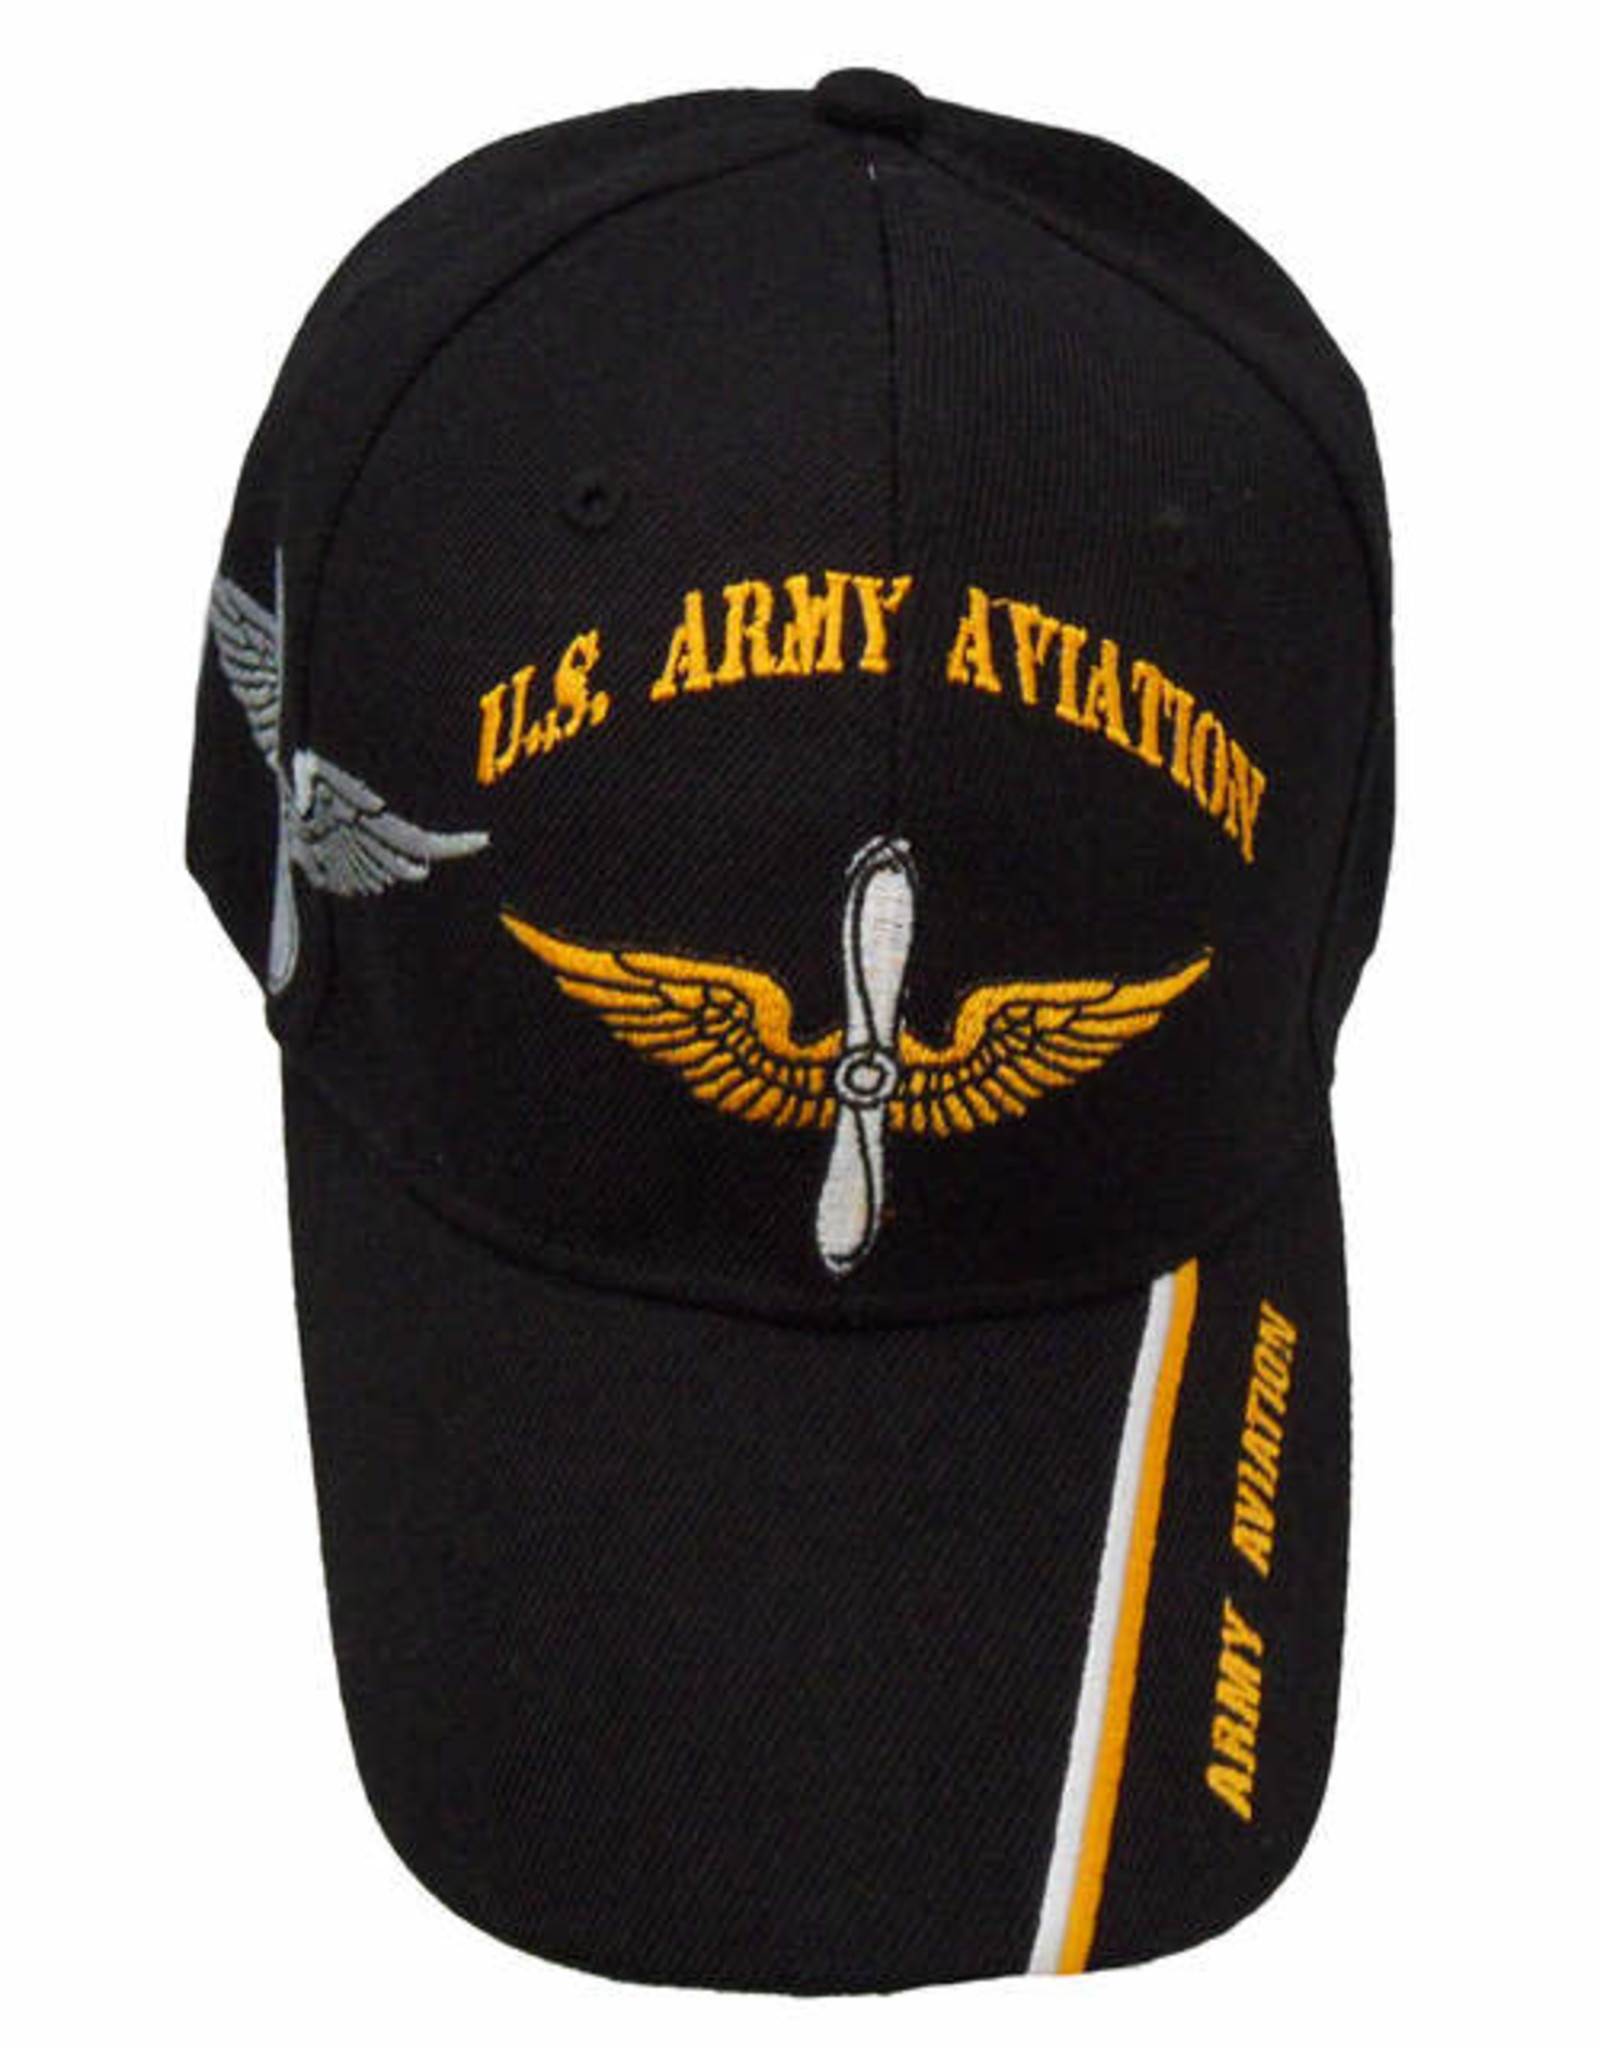 MidMil U.S. Army Aviation Hat with Emblem and Shadow Black